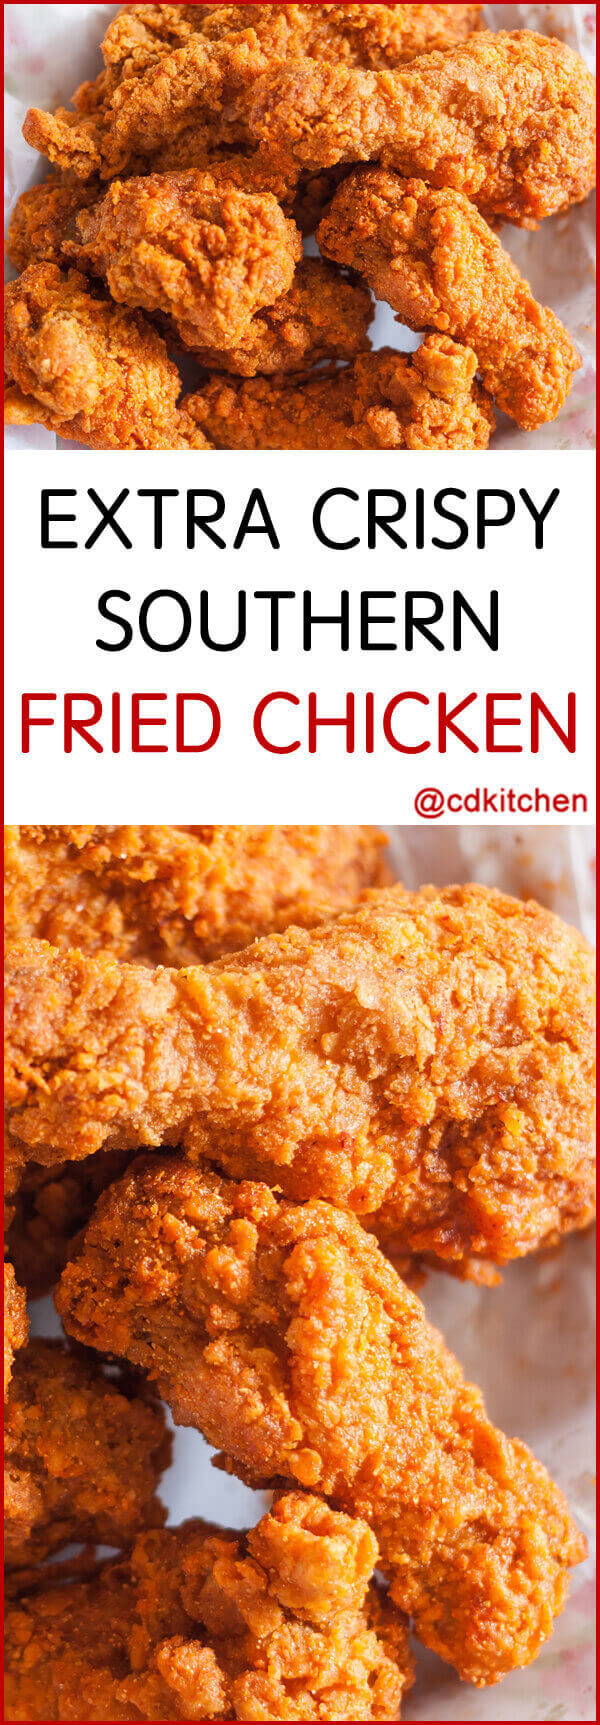 Extra Crispy Southern Fried Chicken Recipe | CDKitchen.com